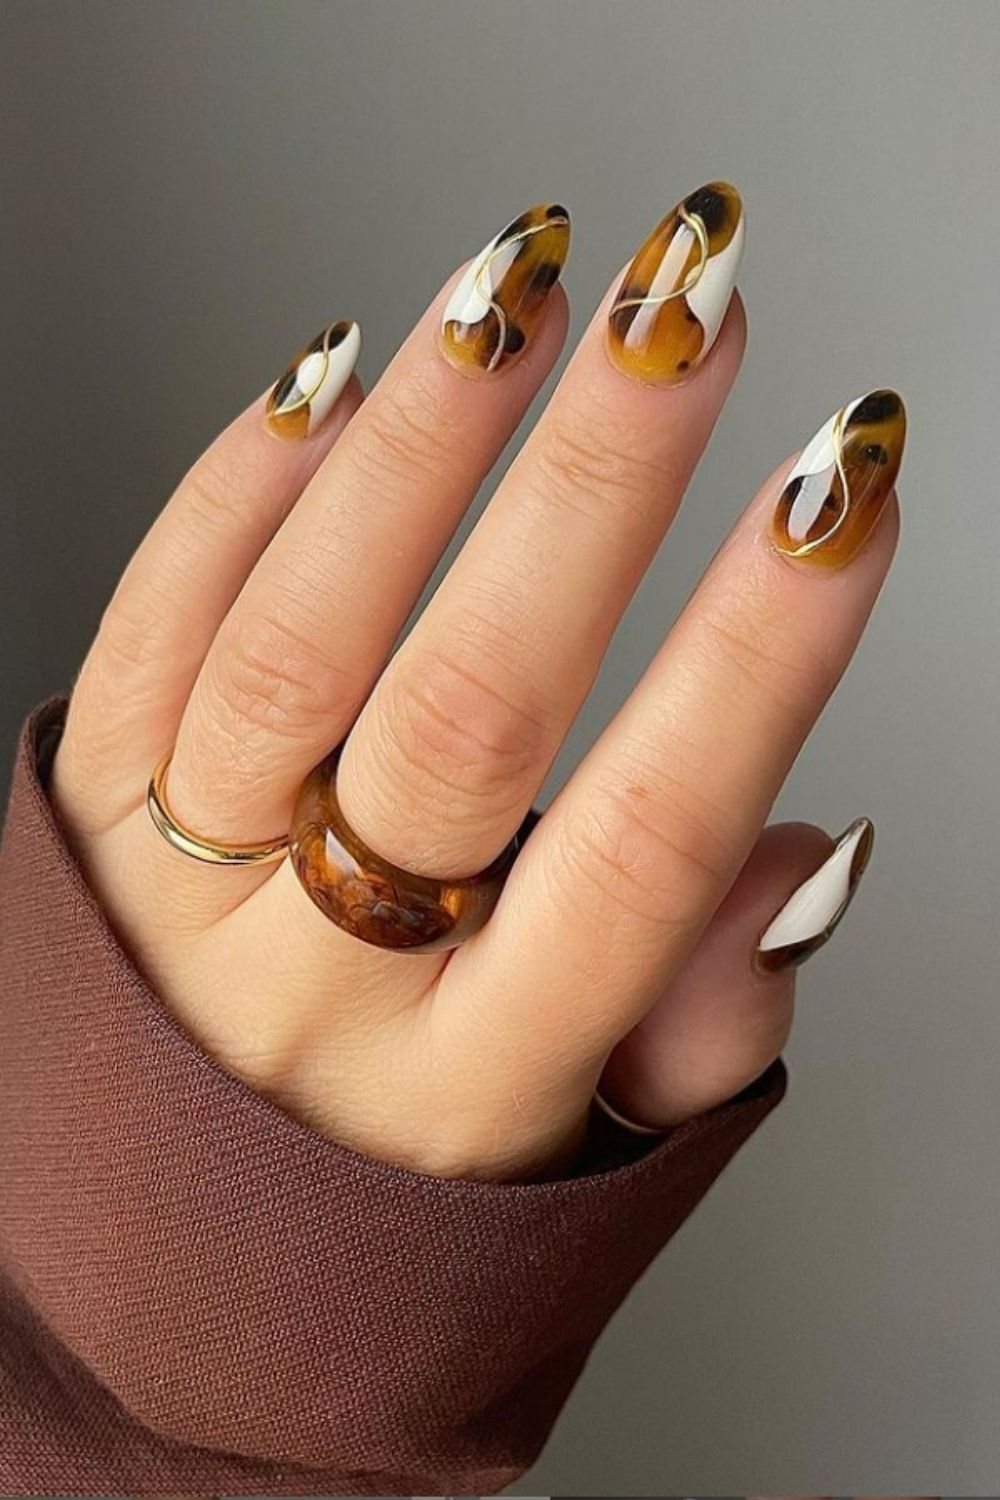 Brown and white almond nail design